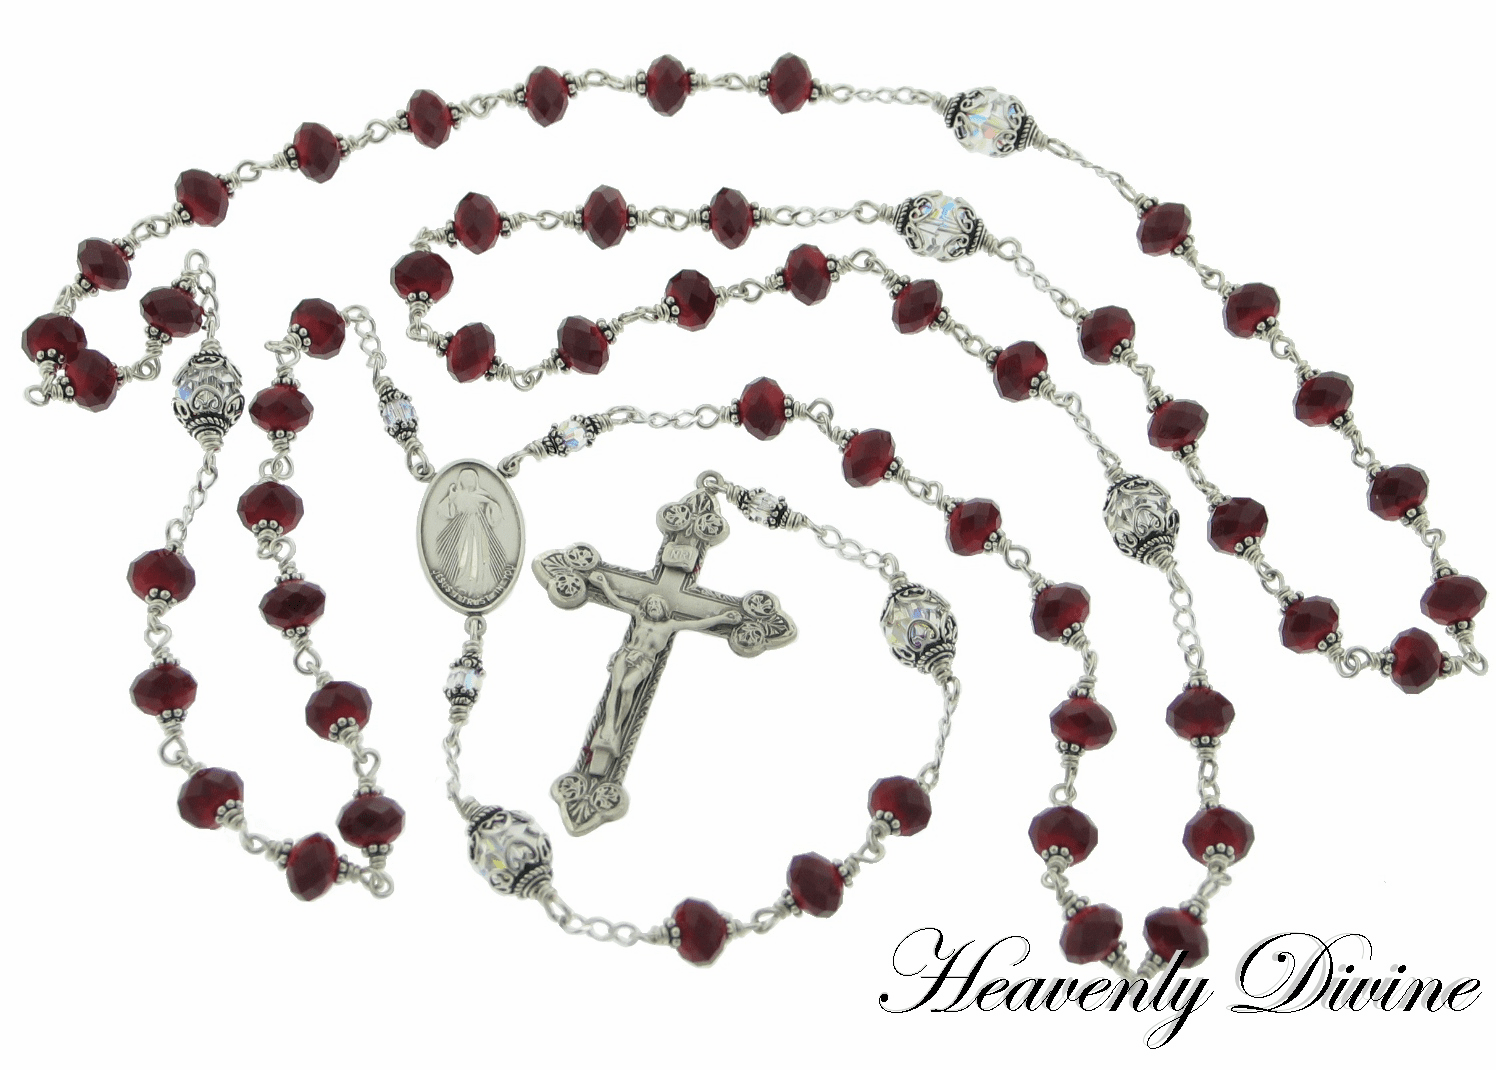 Heavenly Divine Sterling Silver Five Decade Wire-Wrapped Rosary